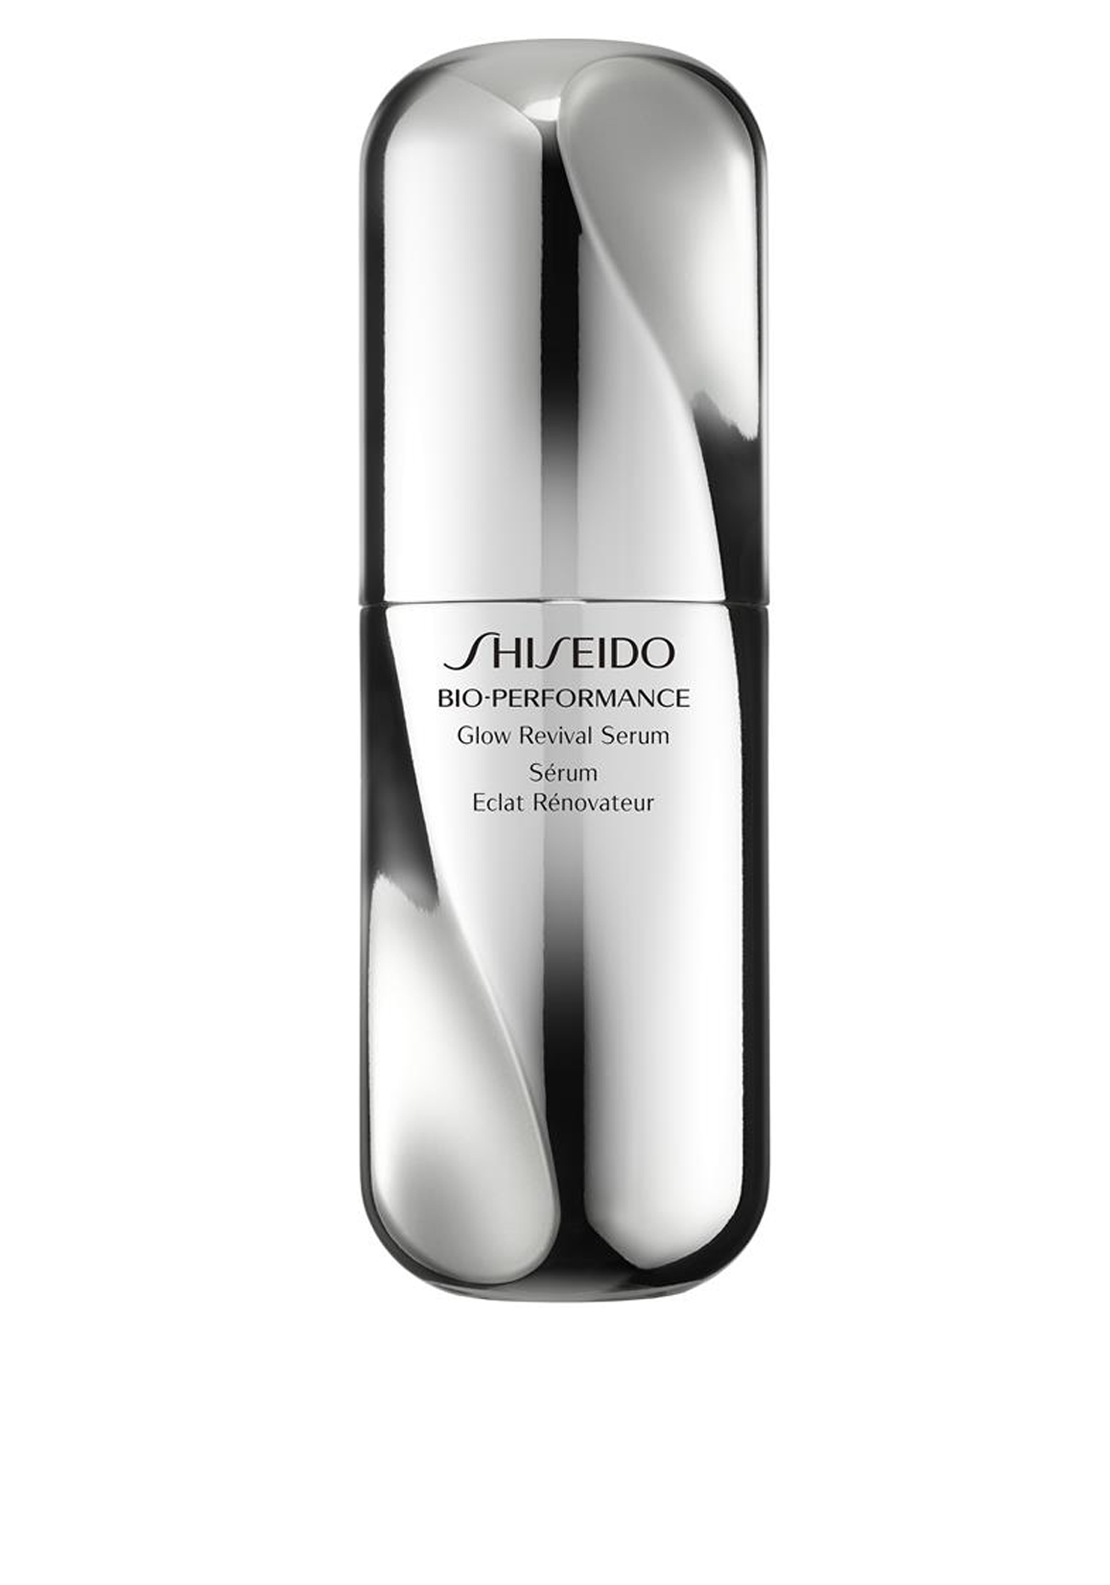 Shiseido Bio Performance Glow Revival Serum, 30ml